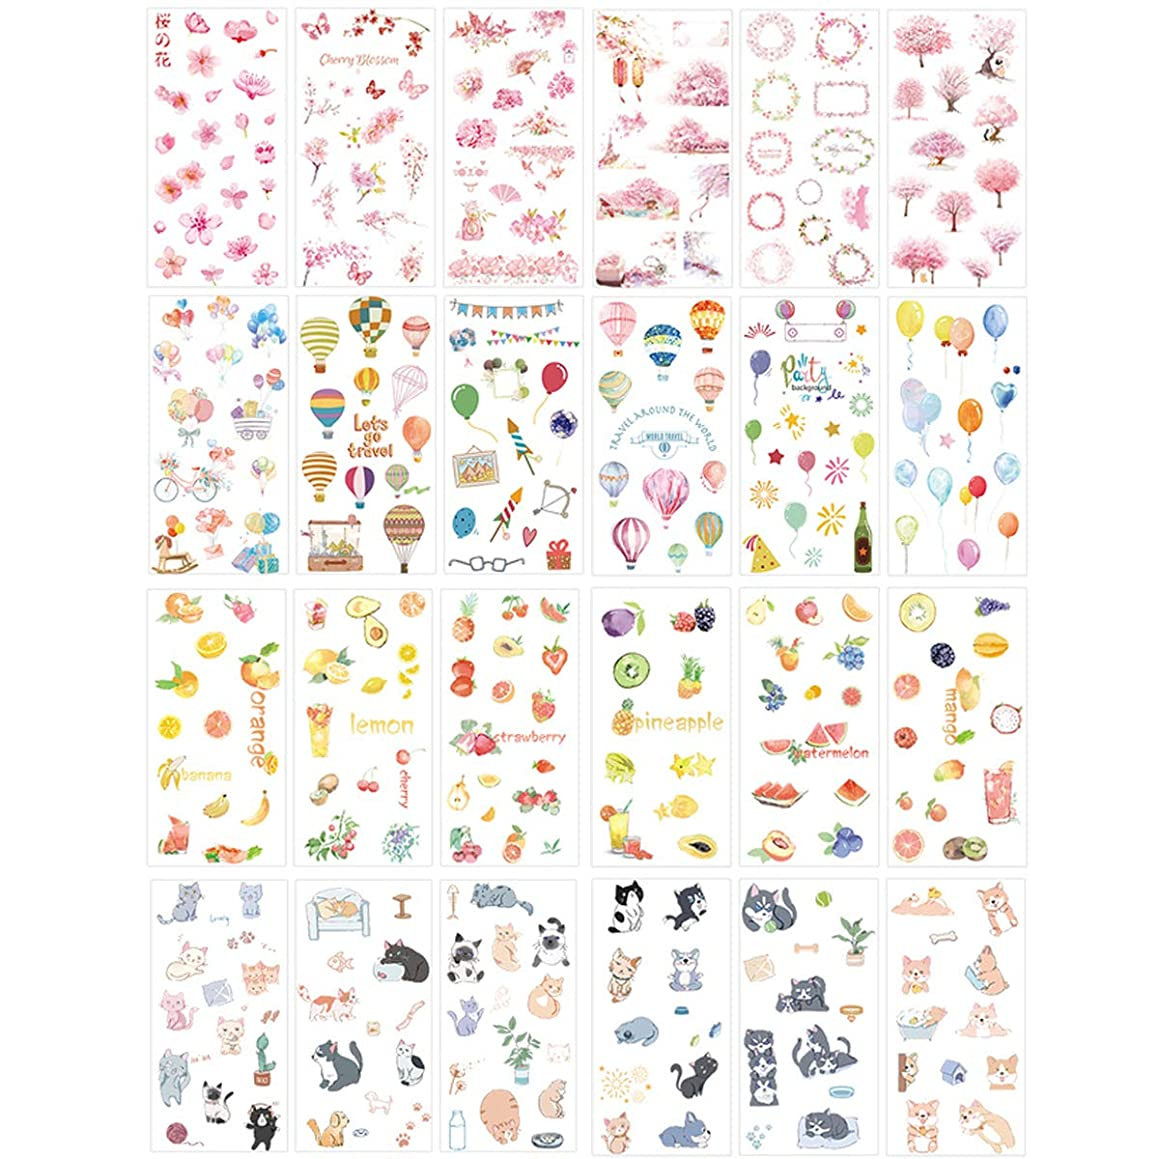 Kawaii Stationery Sticker Set Balloon Pet Dog Fruit Sticker Label for Scrapbooking Album Decoration Art DIY Craft